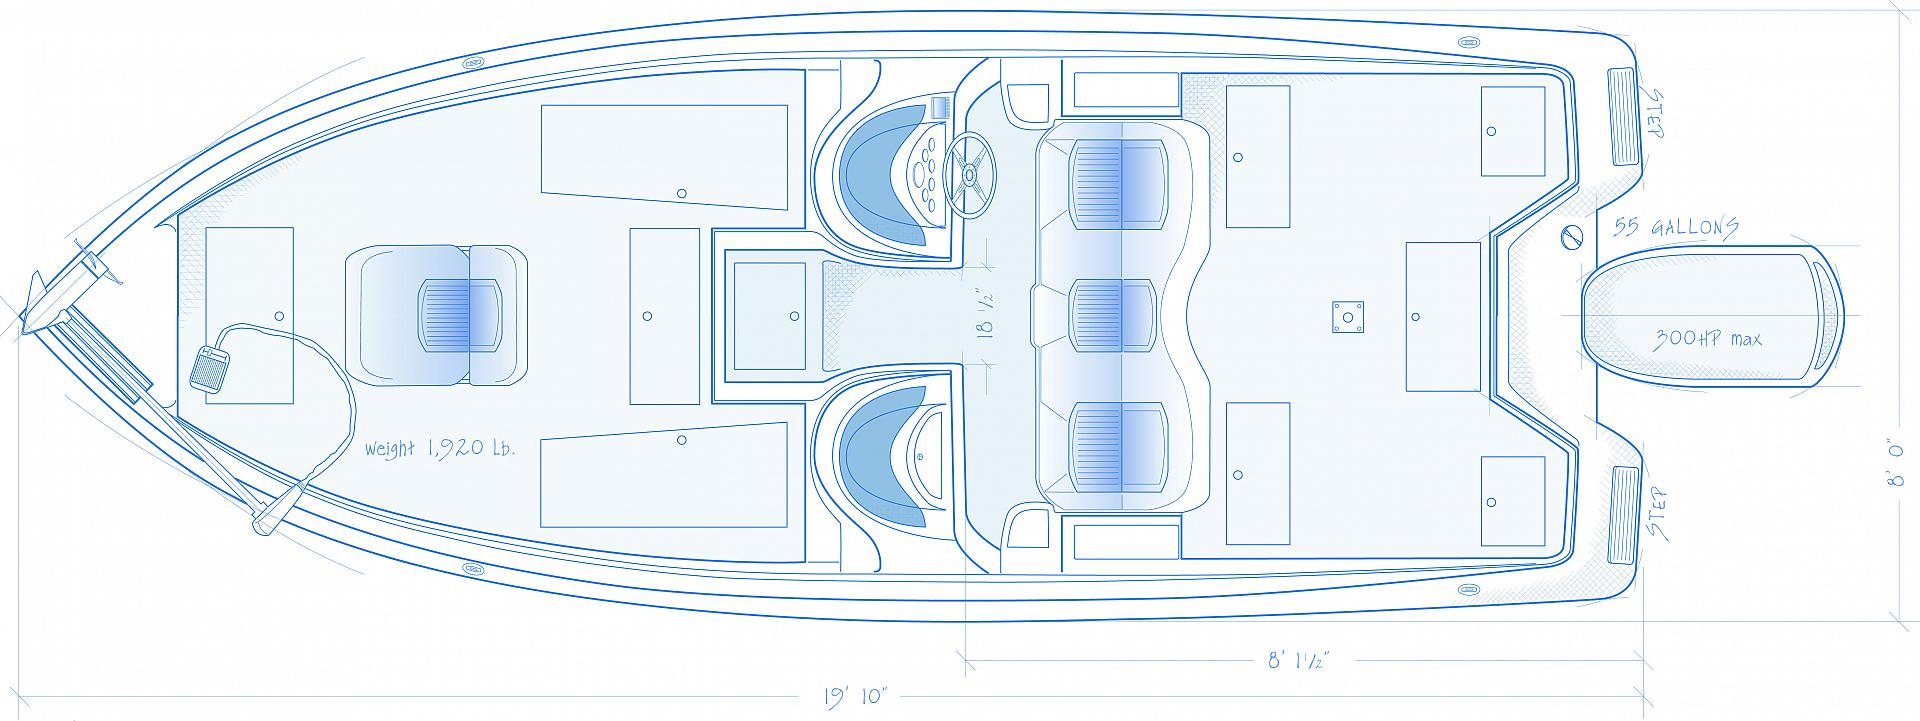 Winter Boat Care Outdoor Canada Basement Wiring Image Via Robert Biron